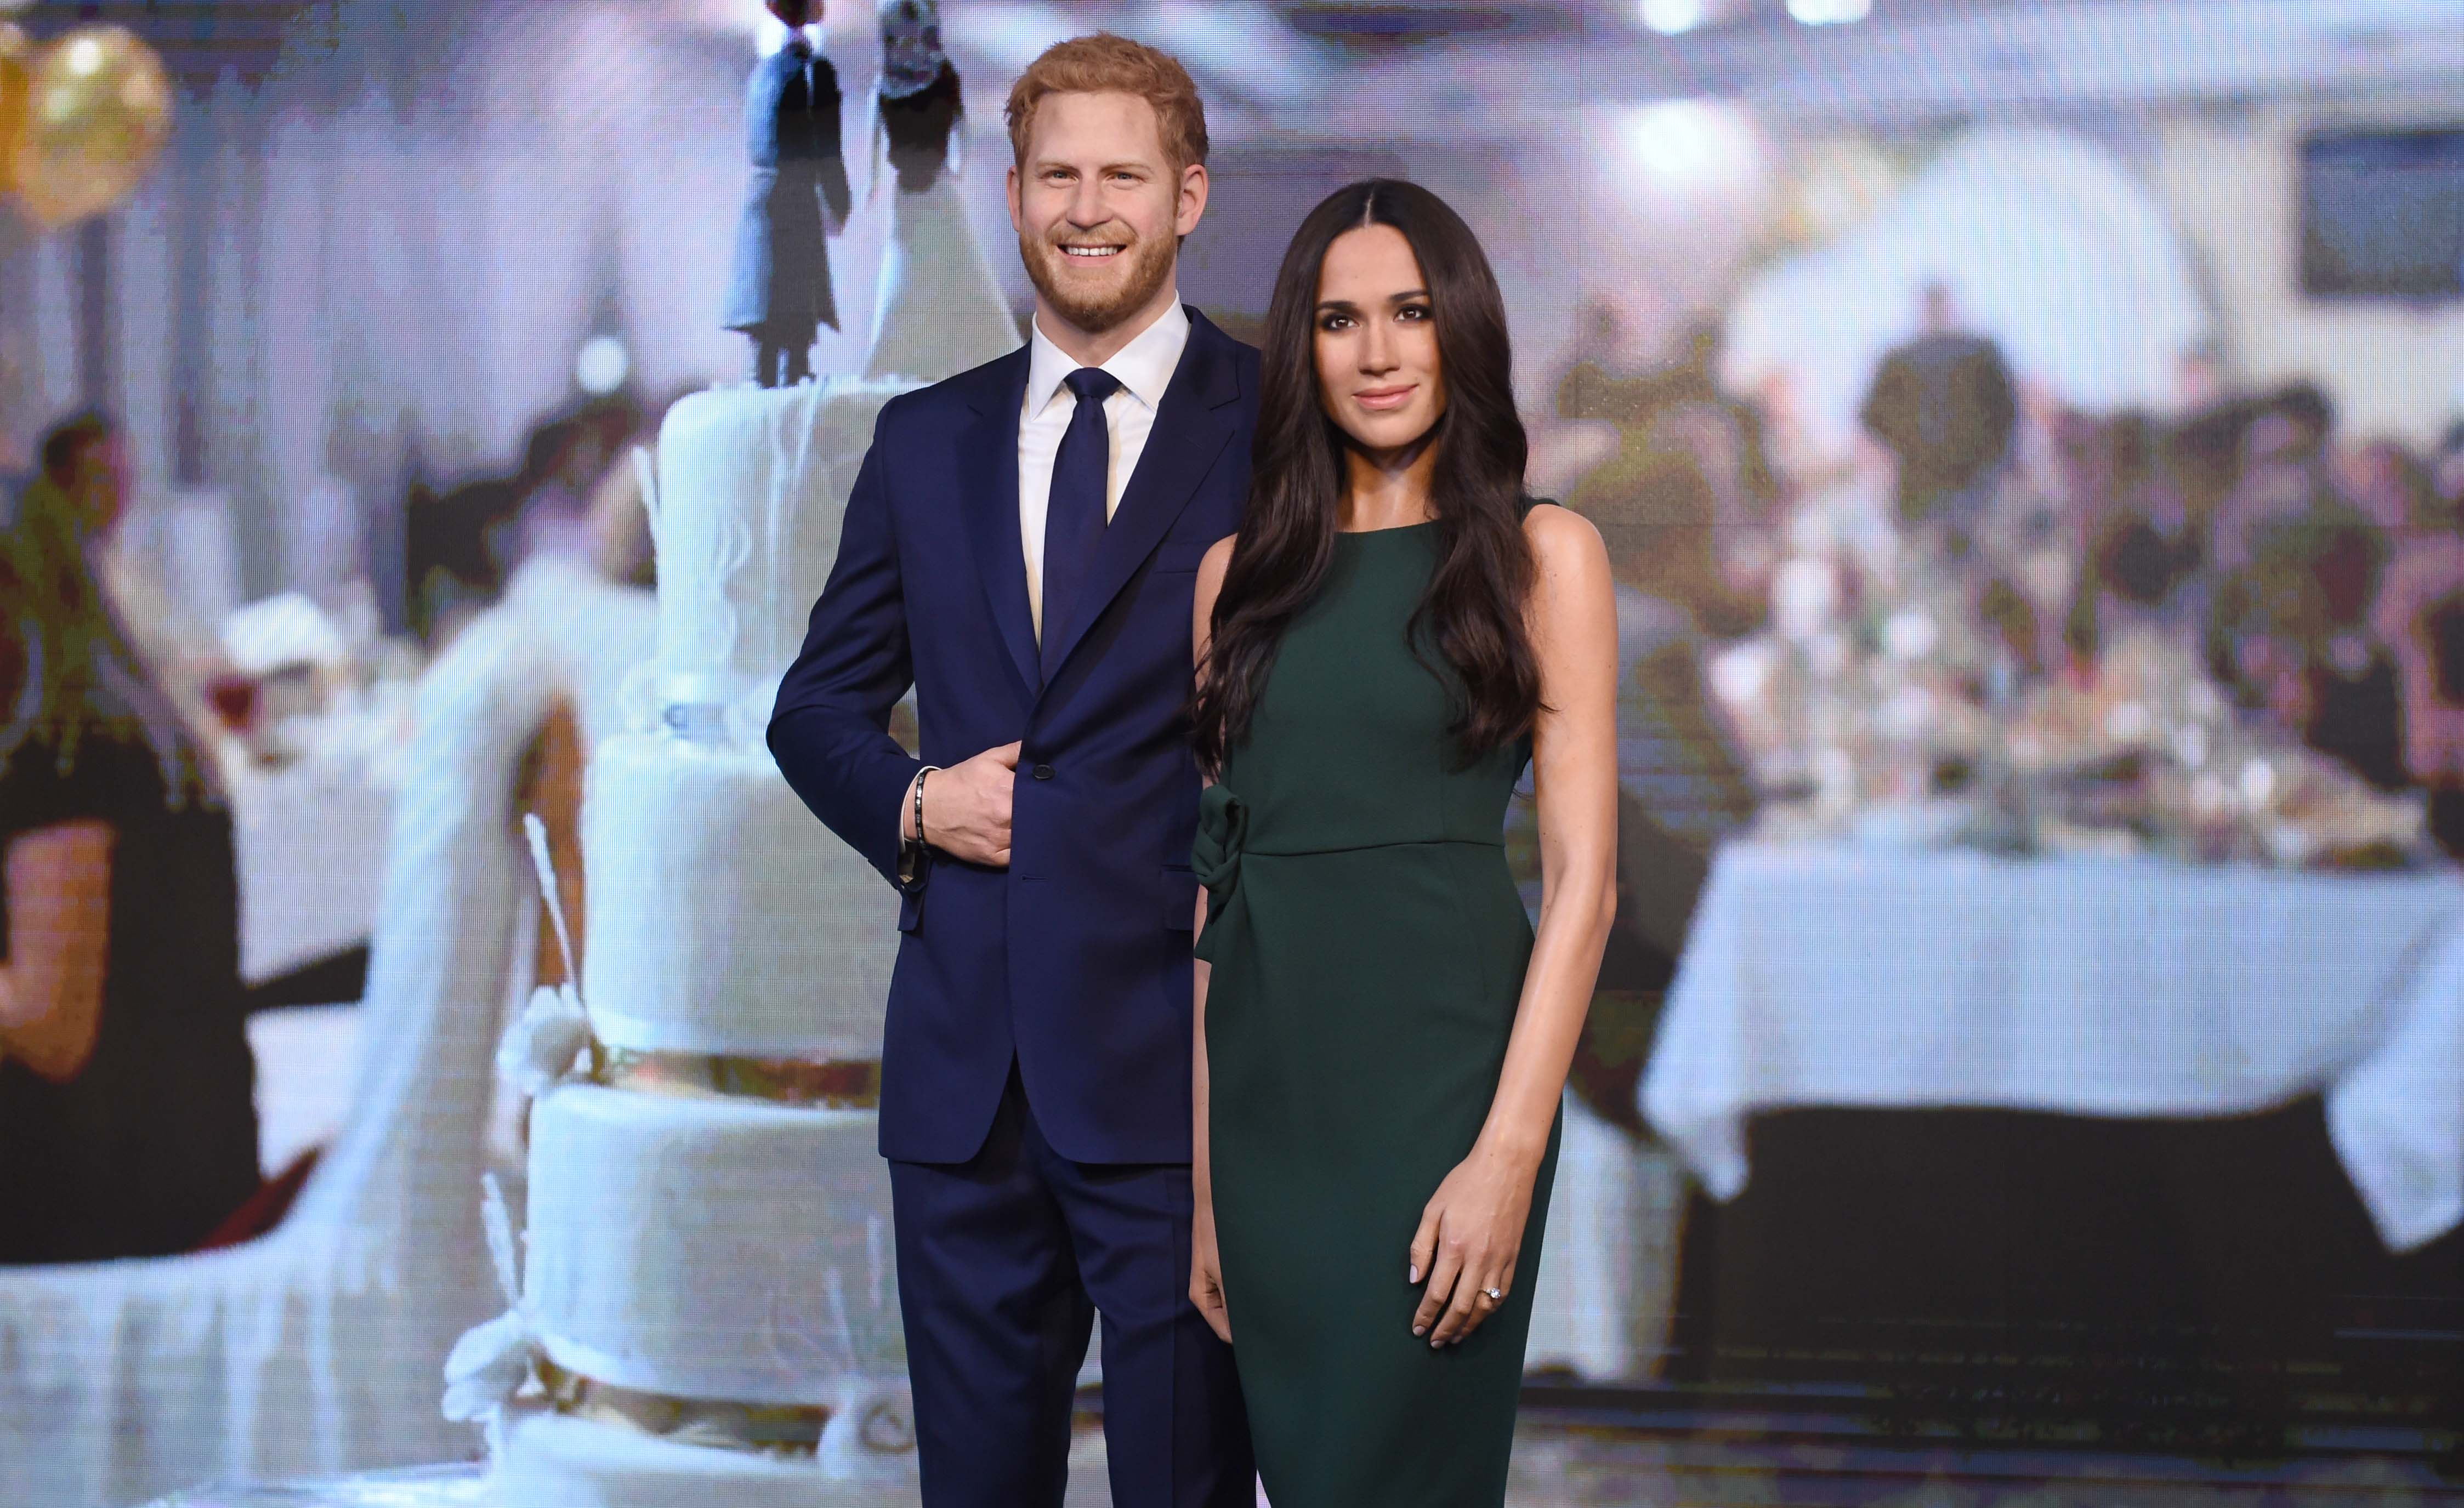 Madame Tussauds unveils a wax figure of Ms. Meghan Markle ahead of her wedding to Prince Harry on May 19 at Madame Tussauds on May 9, 2018 in London, England. (Photo by Stuart C. Wilson/Getty Images)